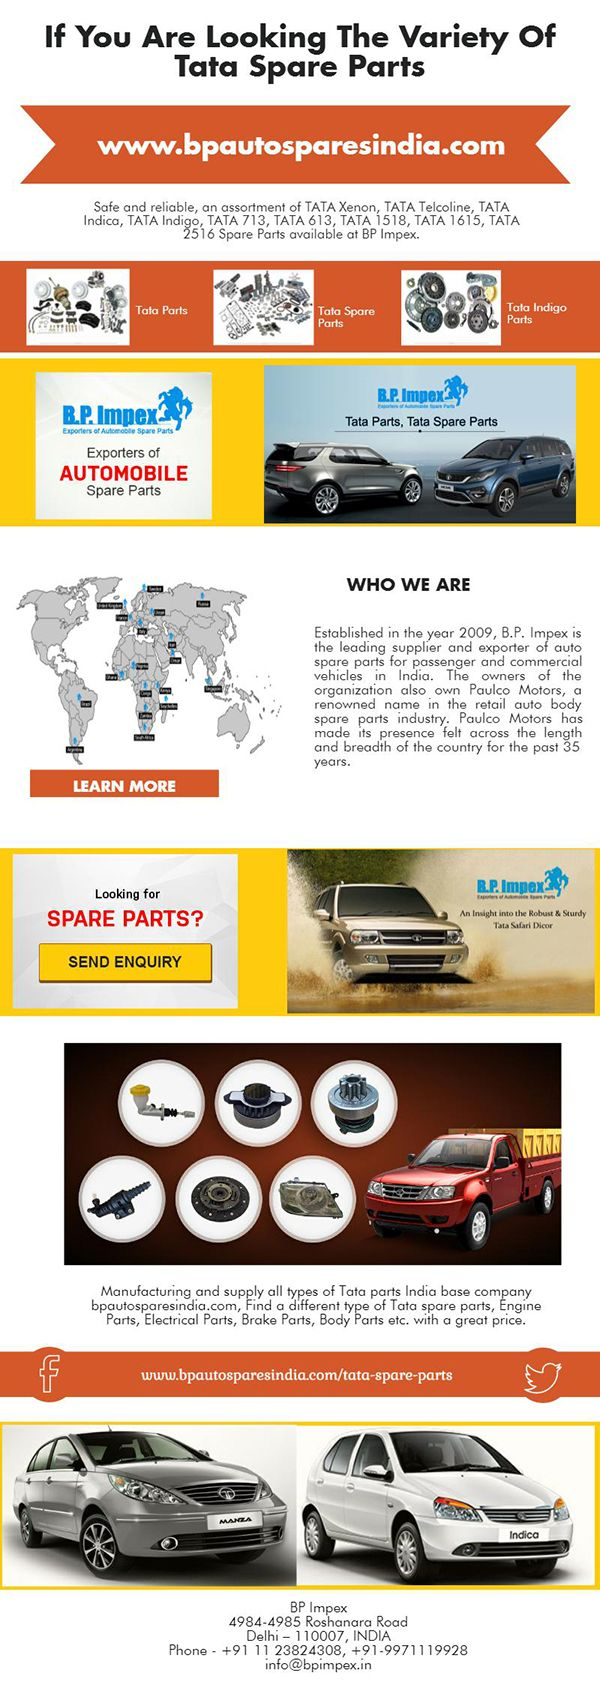 Genuine tata spare parts the bp impex company launched tata spare parts and sold all